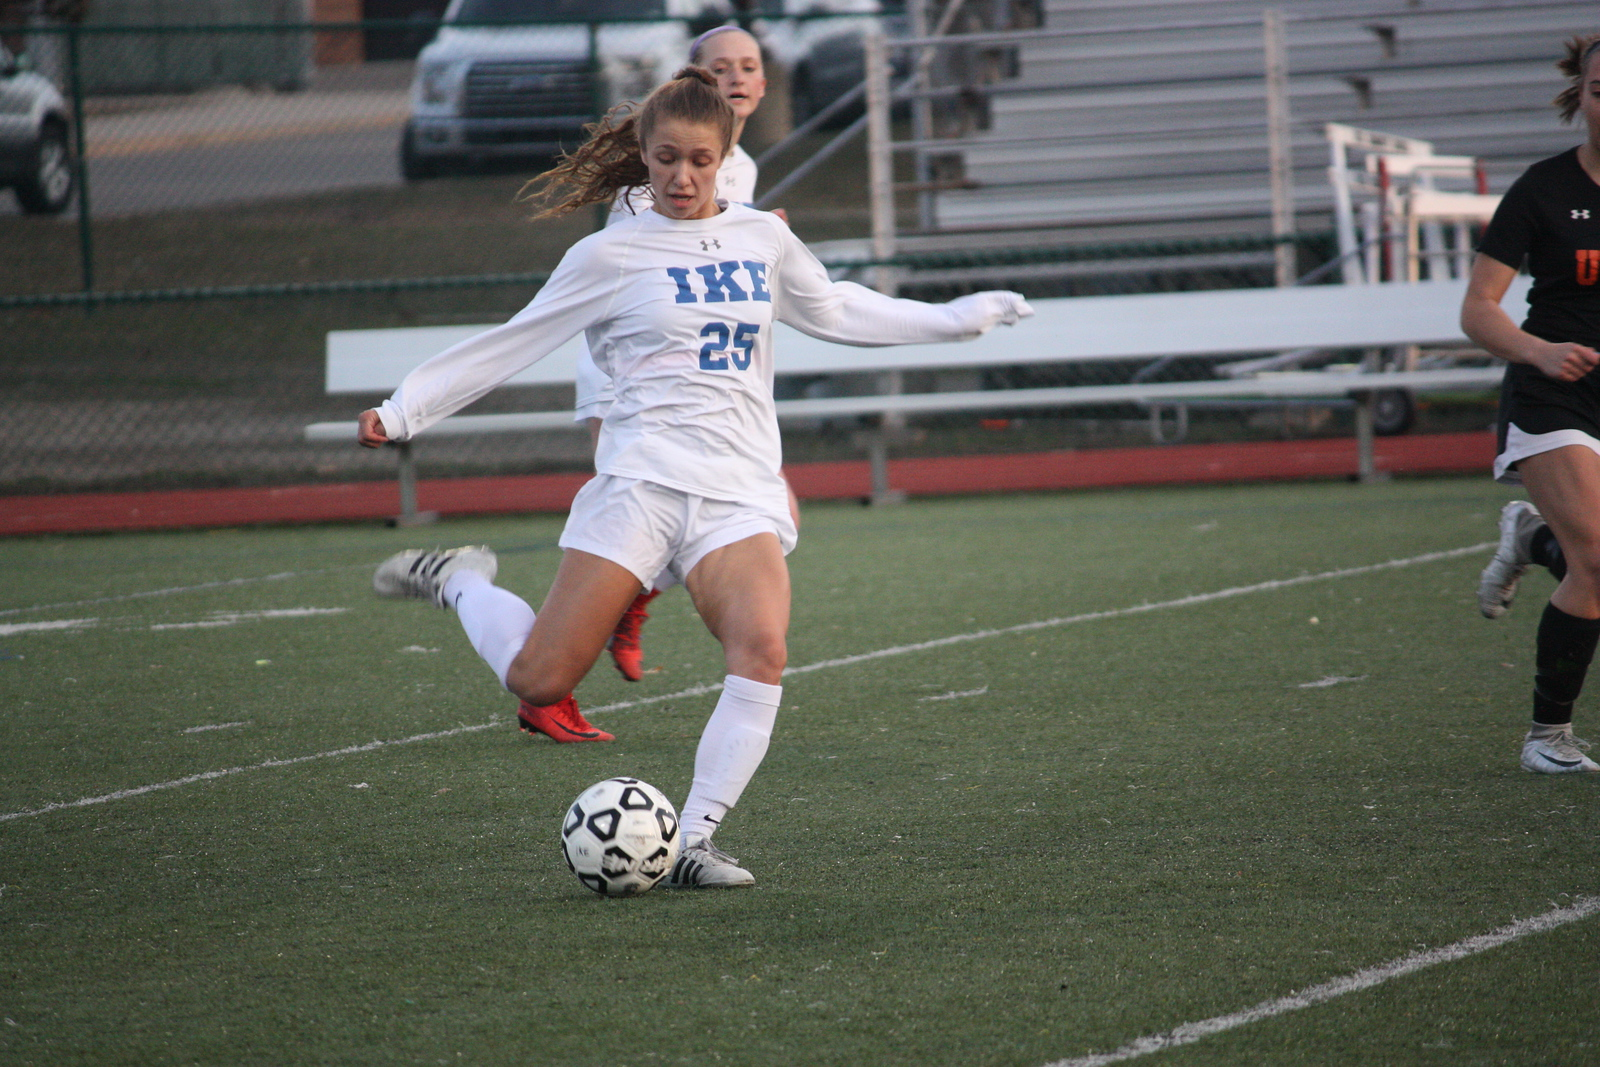 Eisenhower defeated visiting Utica 5-1 in a MAC crossover girls soccer match on  April 11, 2018. (Photo gallery by Kevin Lozon)